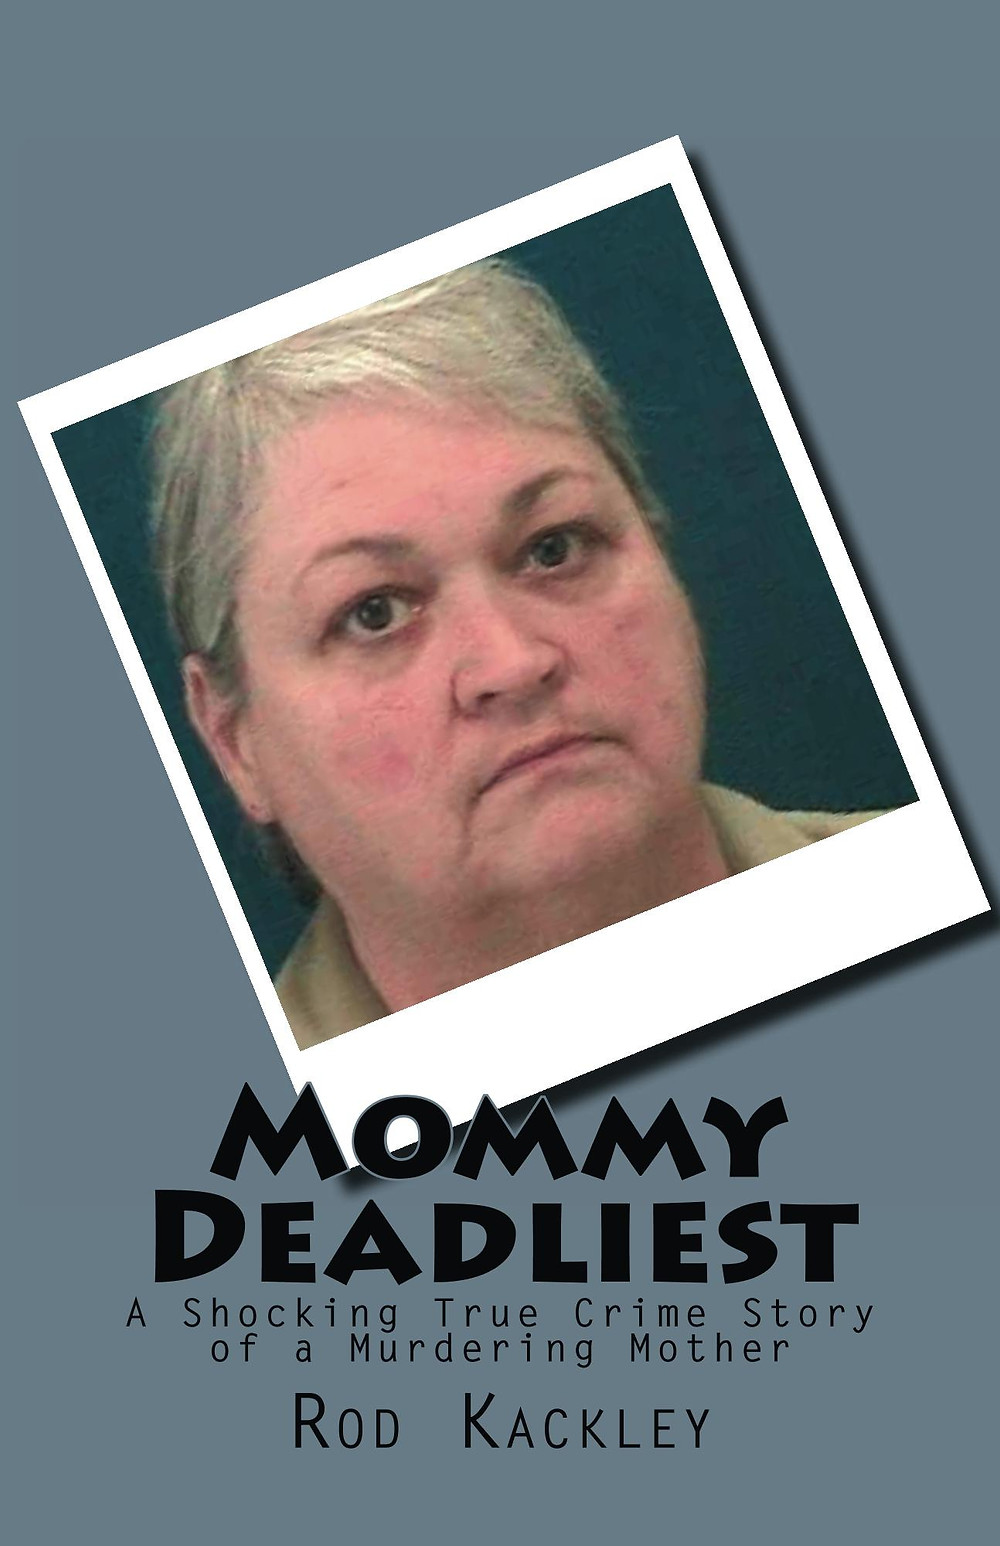 Mommy Deadliest A Shocking True Crime Story of a Murdering Mother